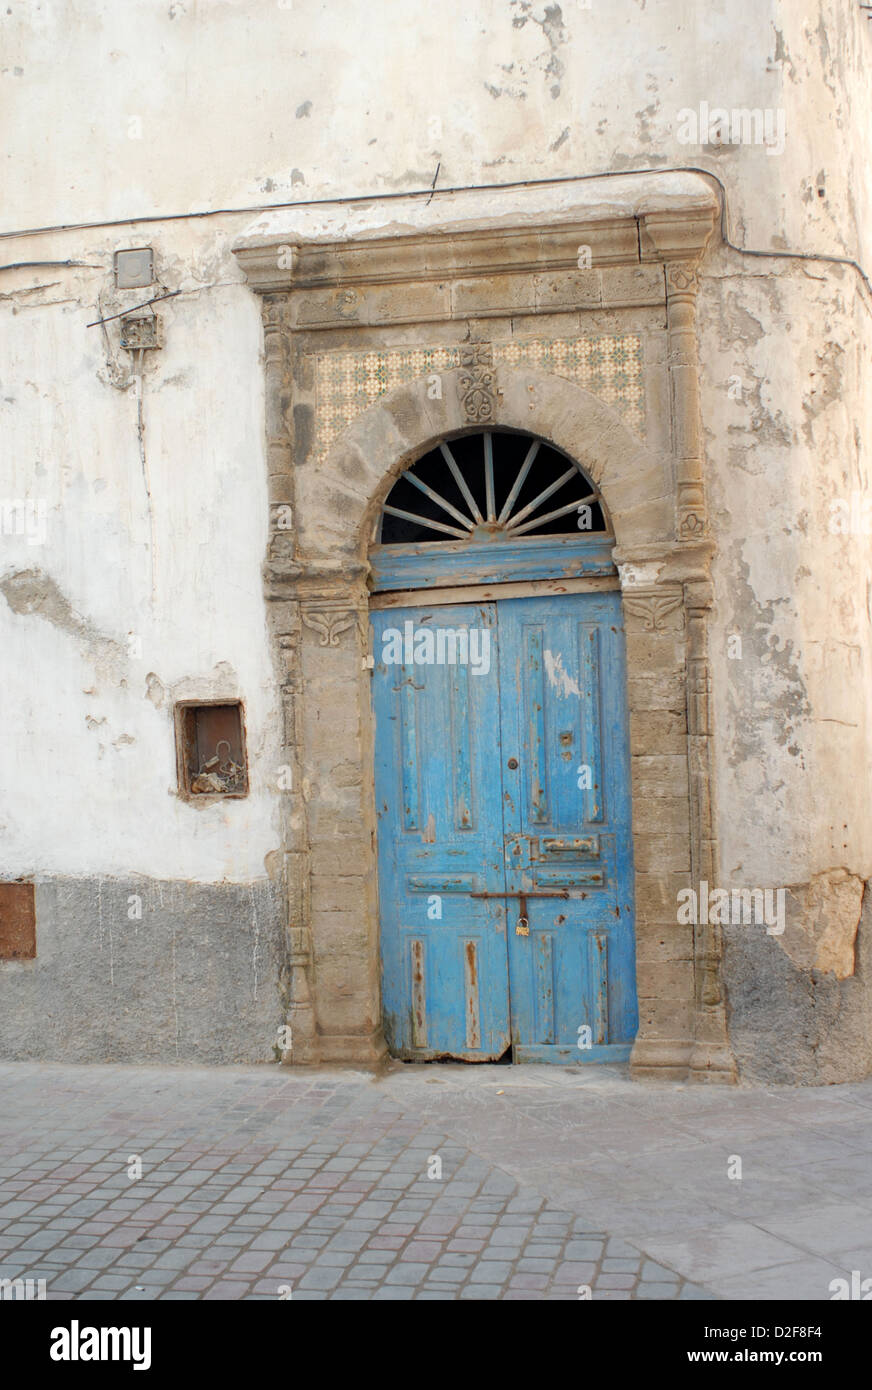 old weather-beaten door in the medina of essaouira morocco - Stock Image